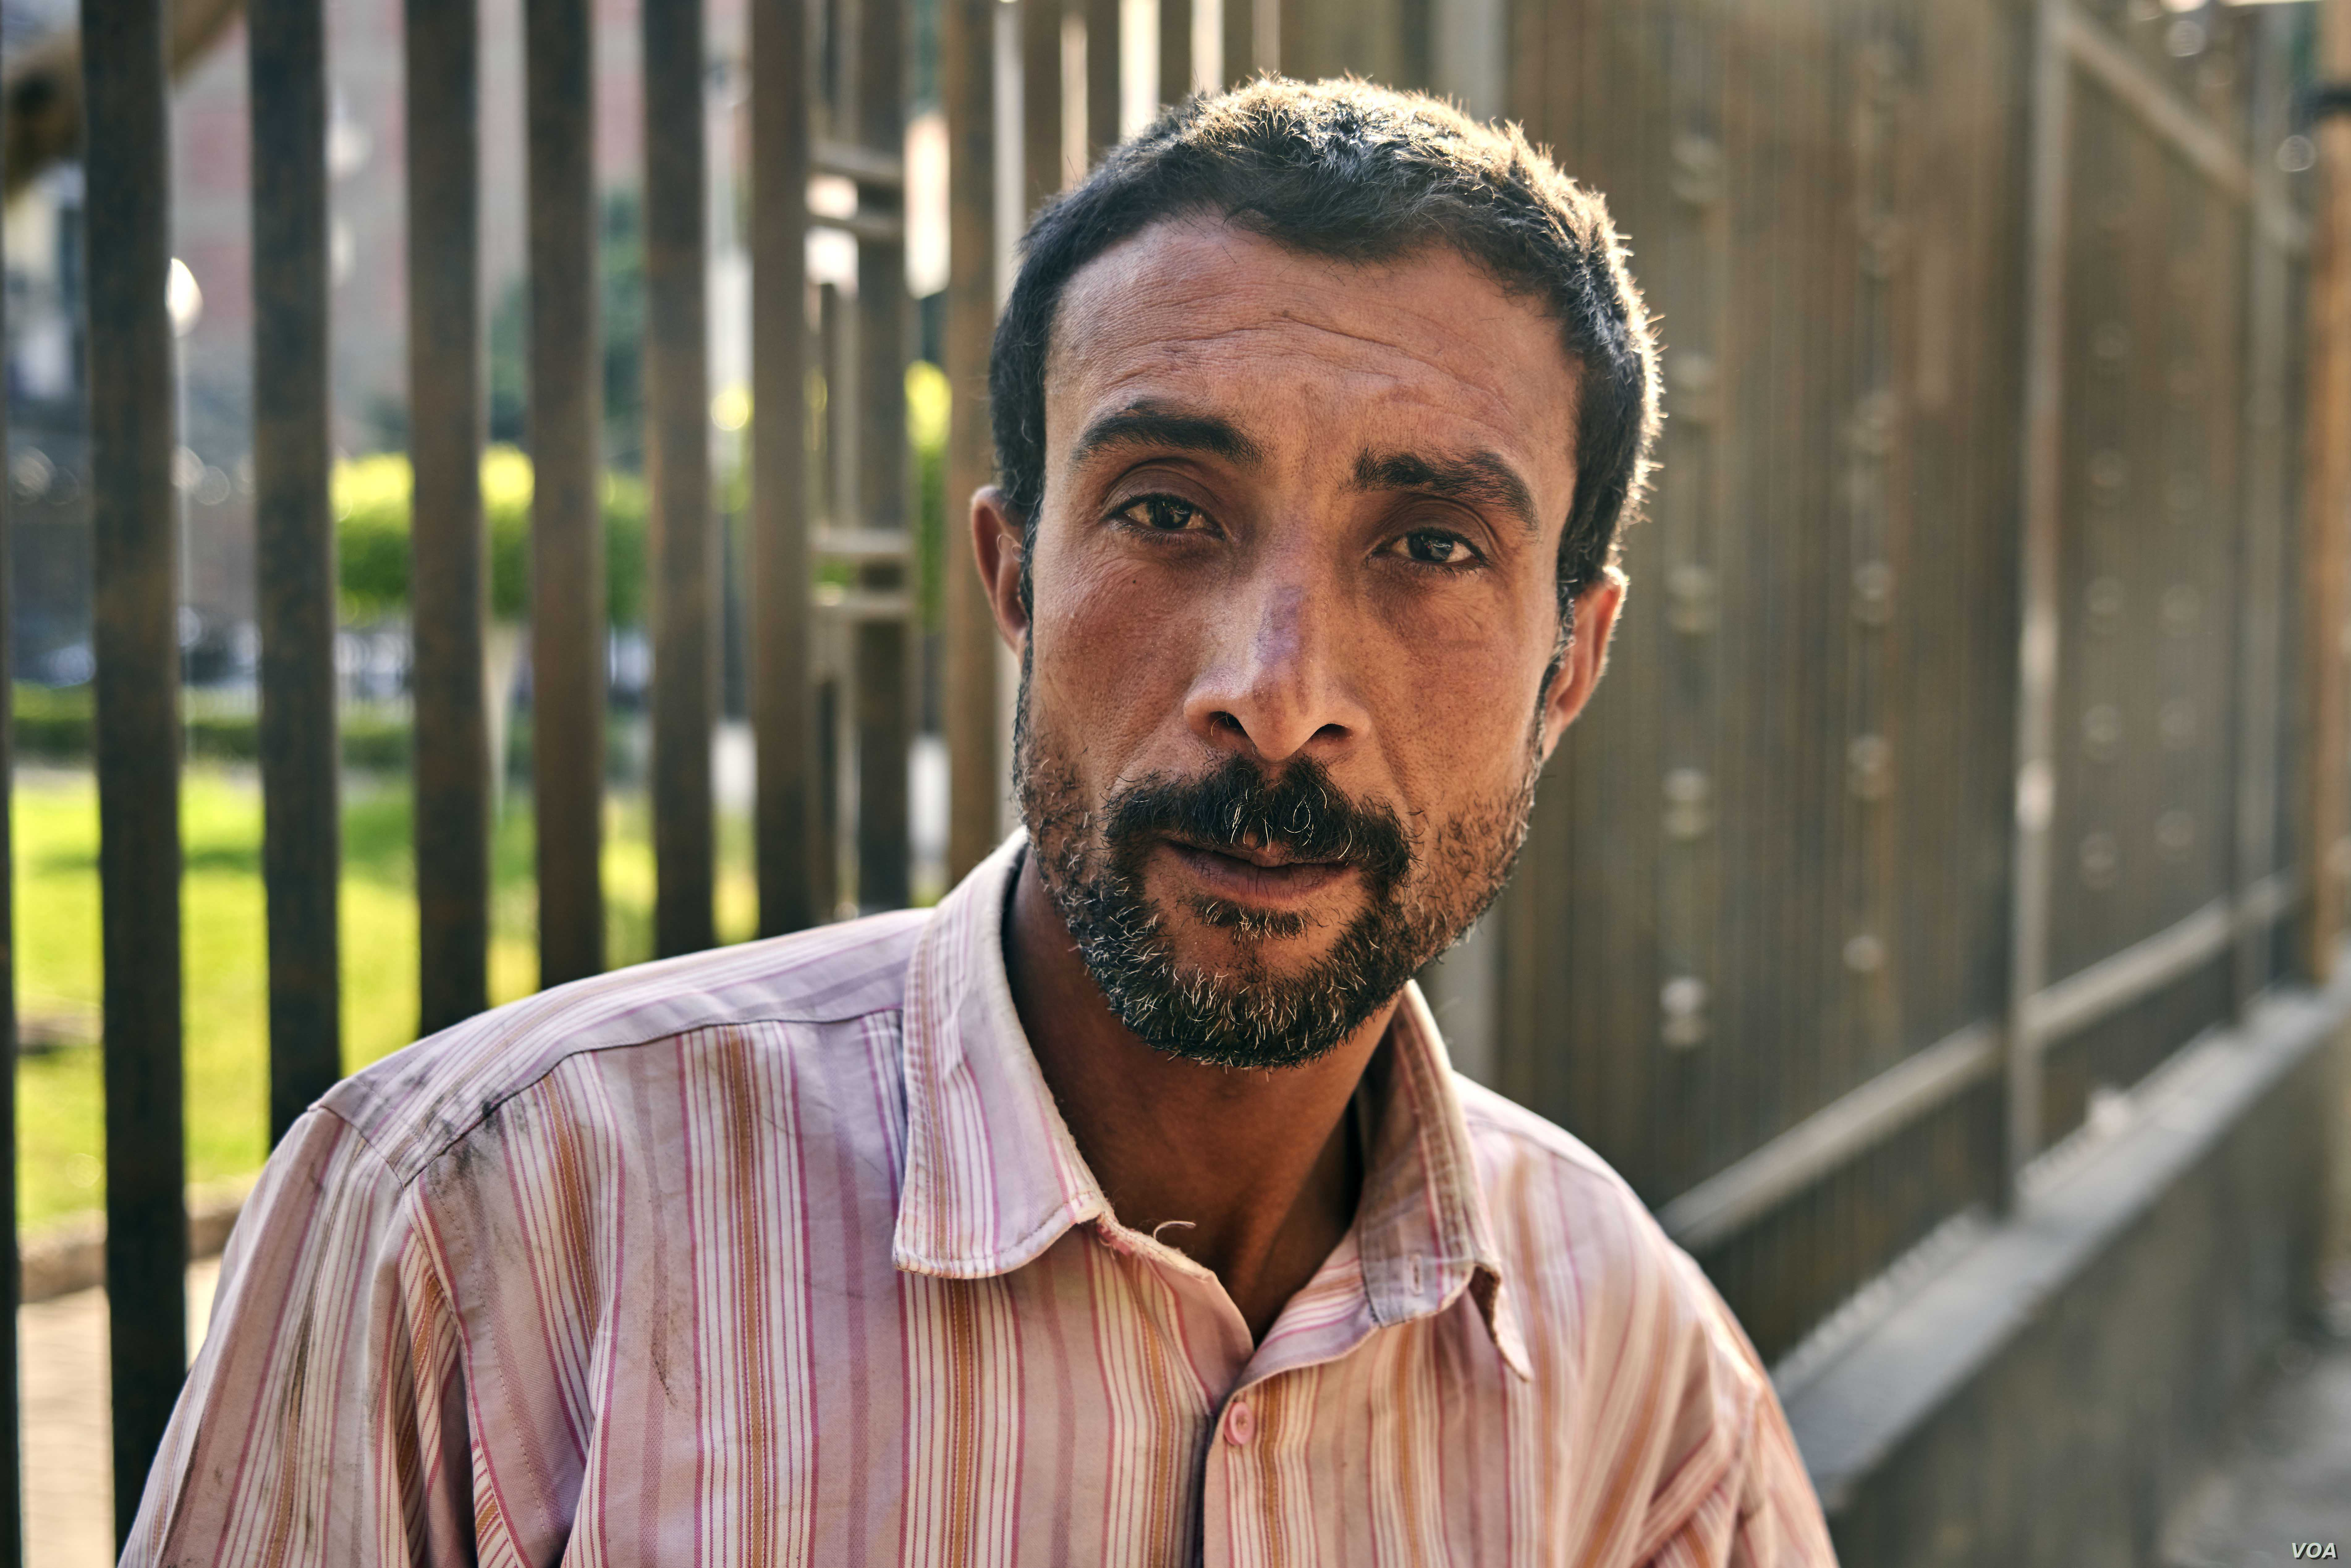 """This man says he won't vote because """"The offer of the food bag is not enough for me to take time off of work"""" on April 20, 2019 in Cairo."""